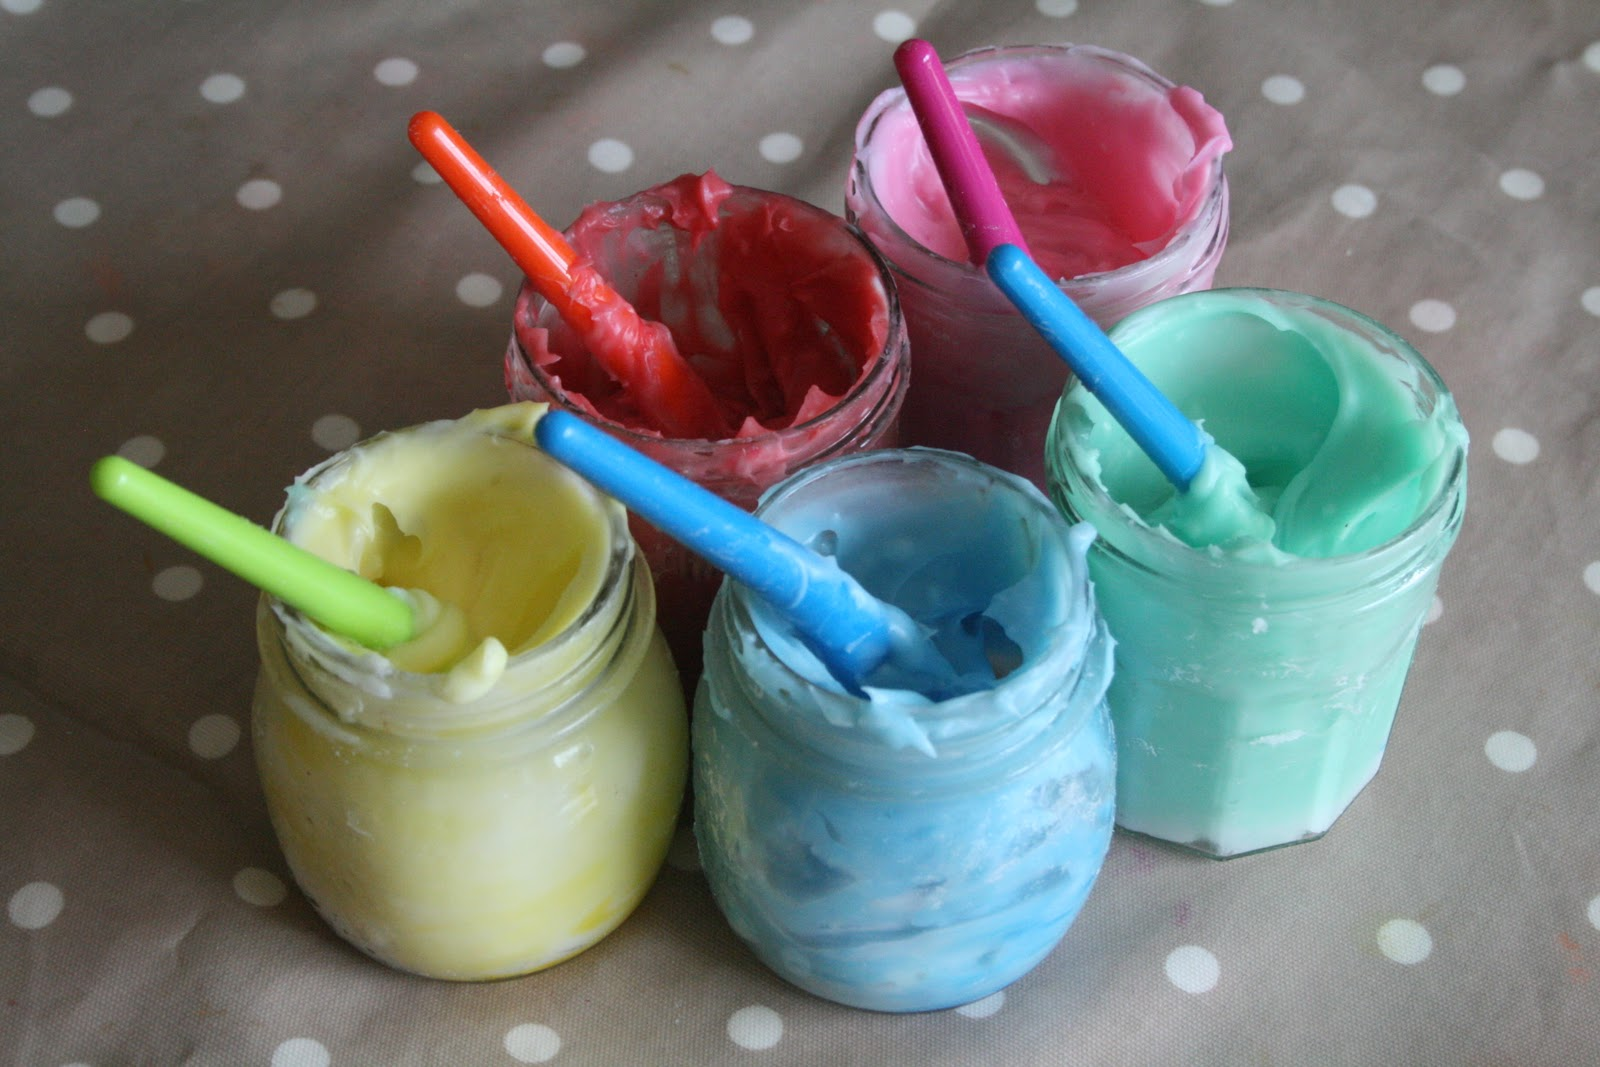 Homemade Edible Finger Paint Recipe - The Imagination Tree